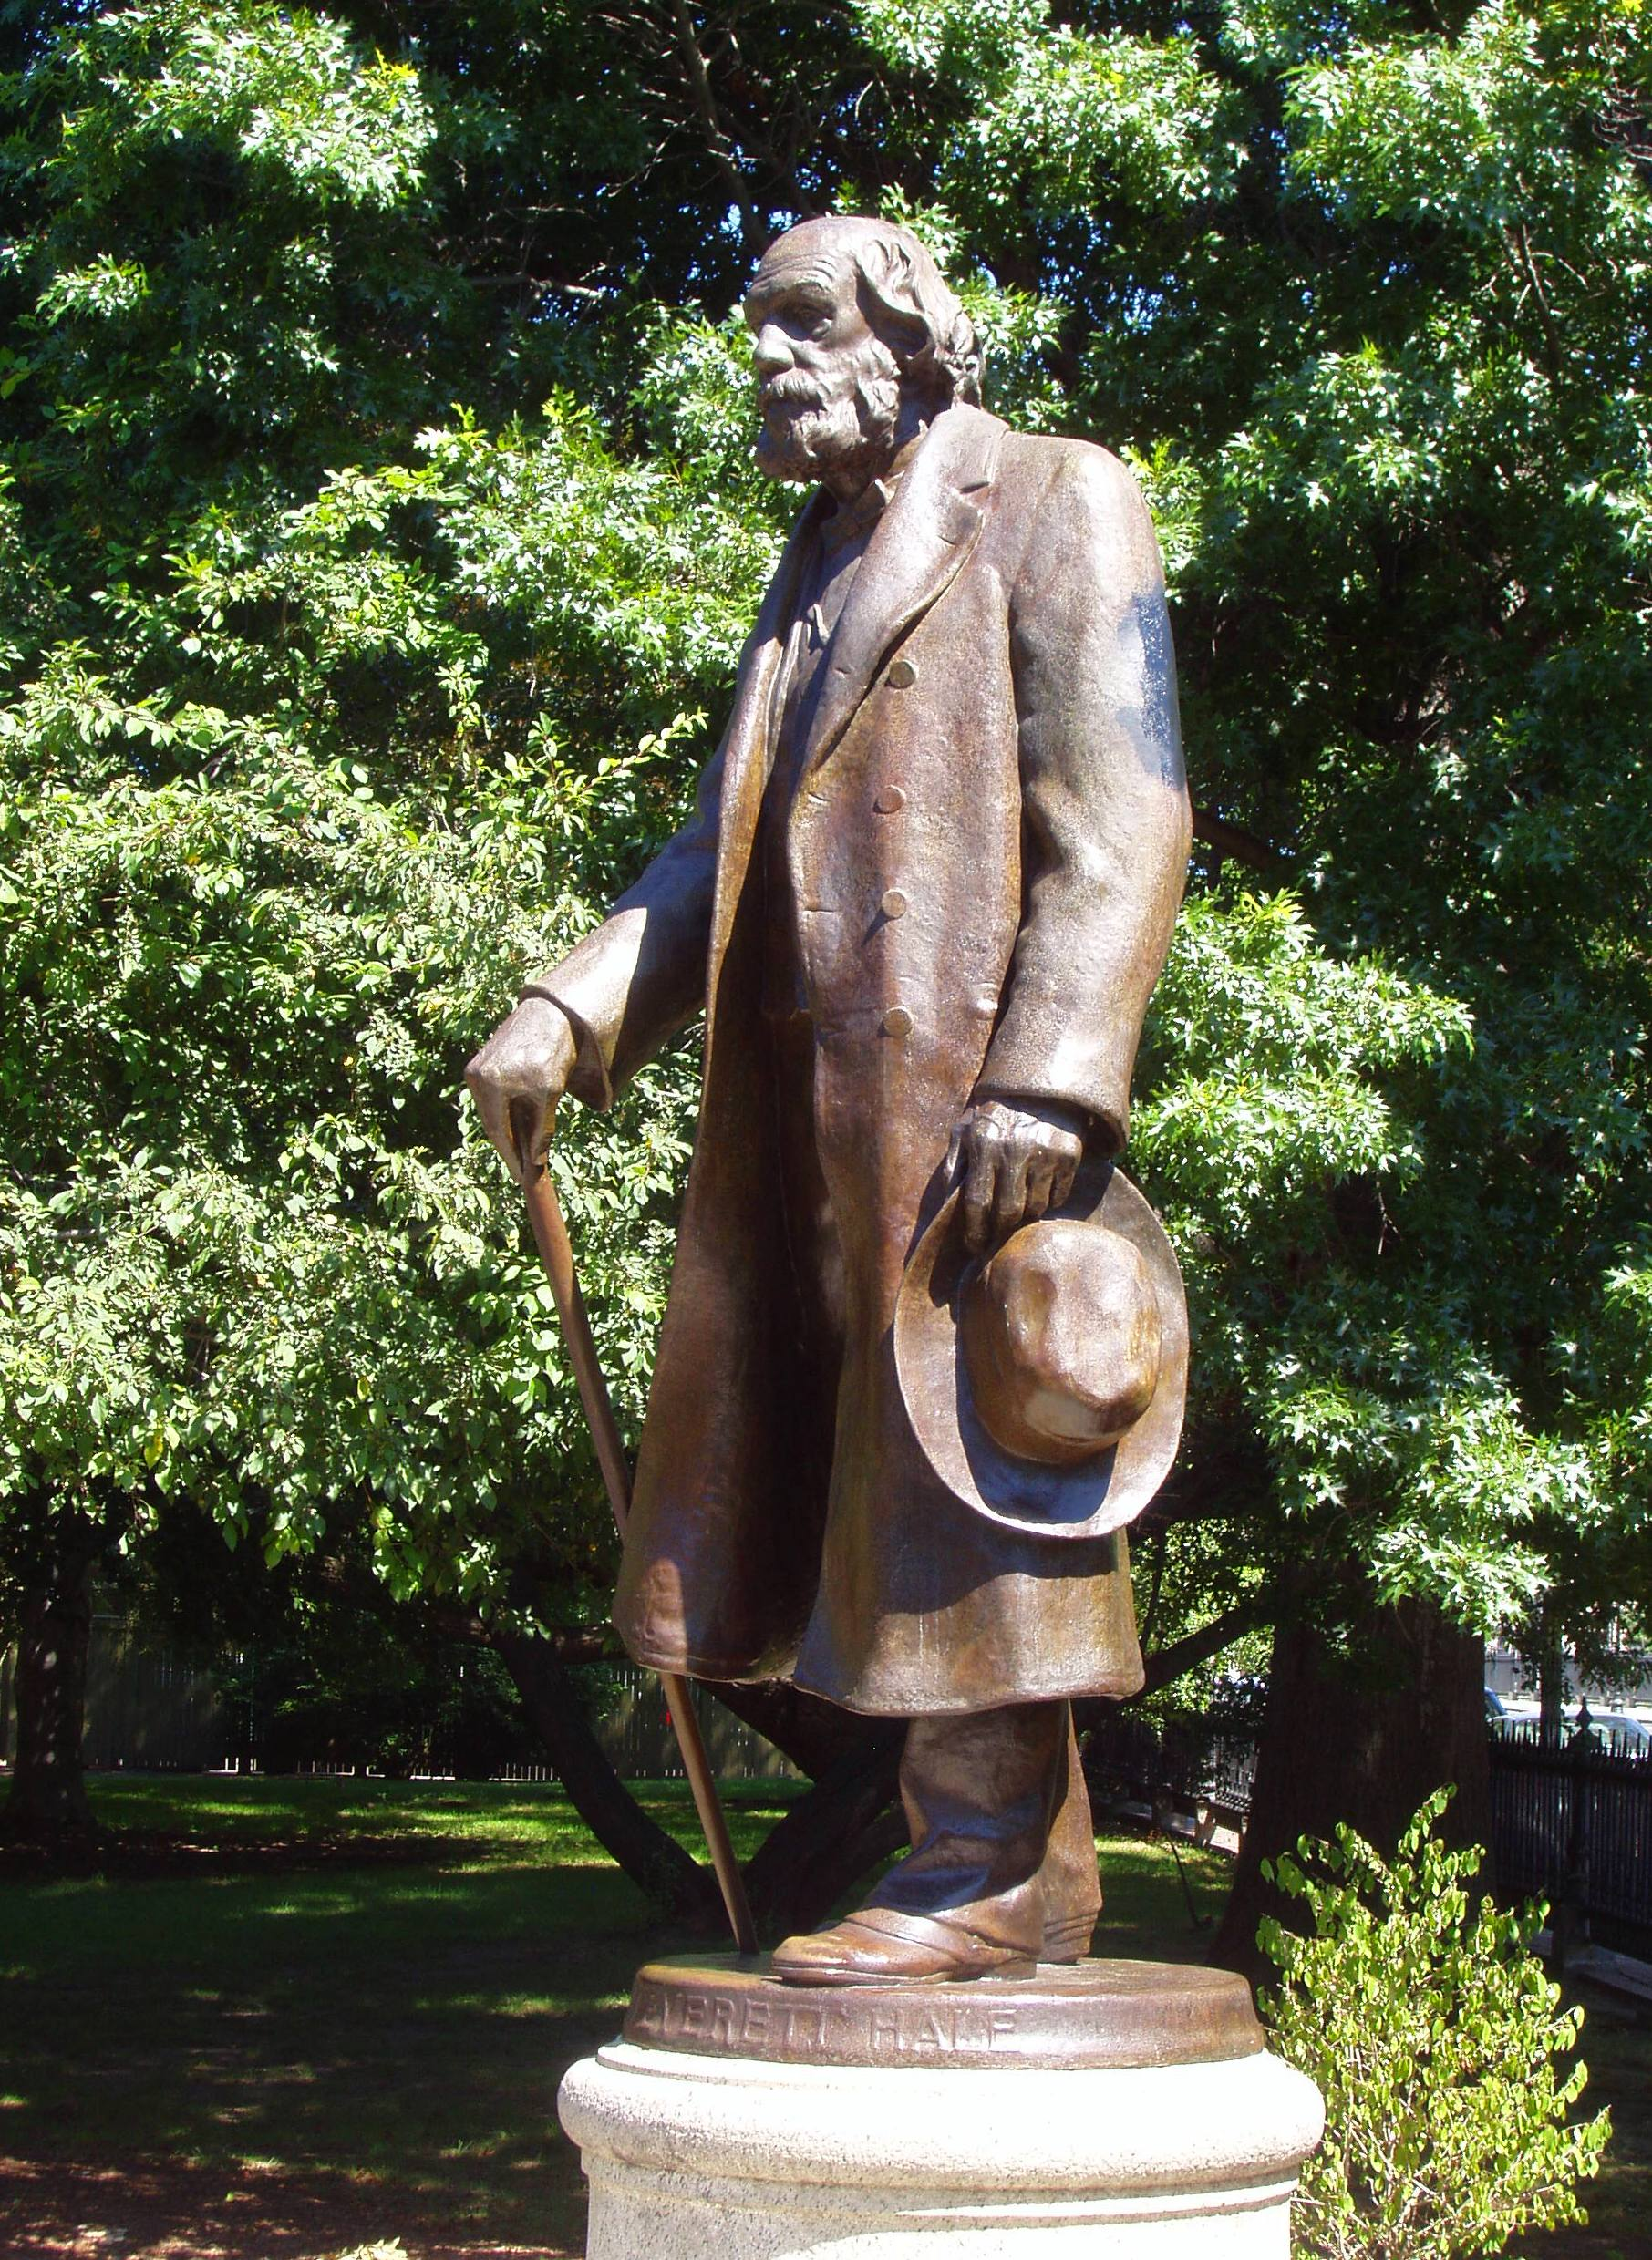 Statue of Edward Everett Hale (image from Wikimedia)